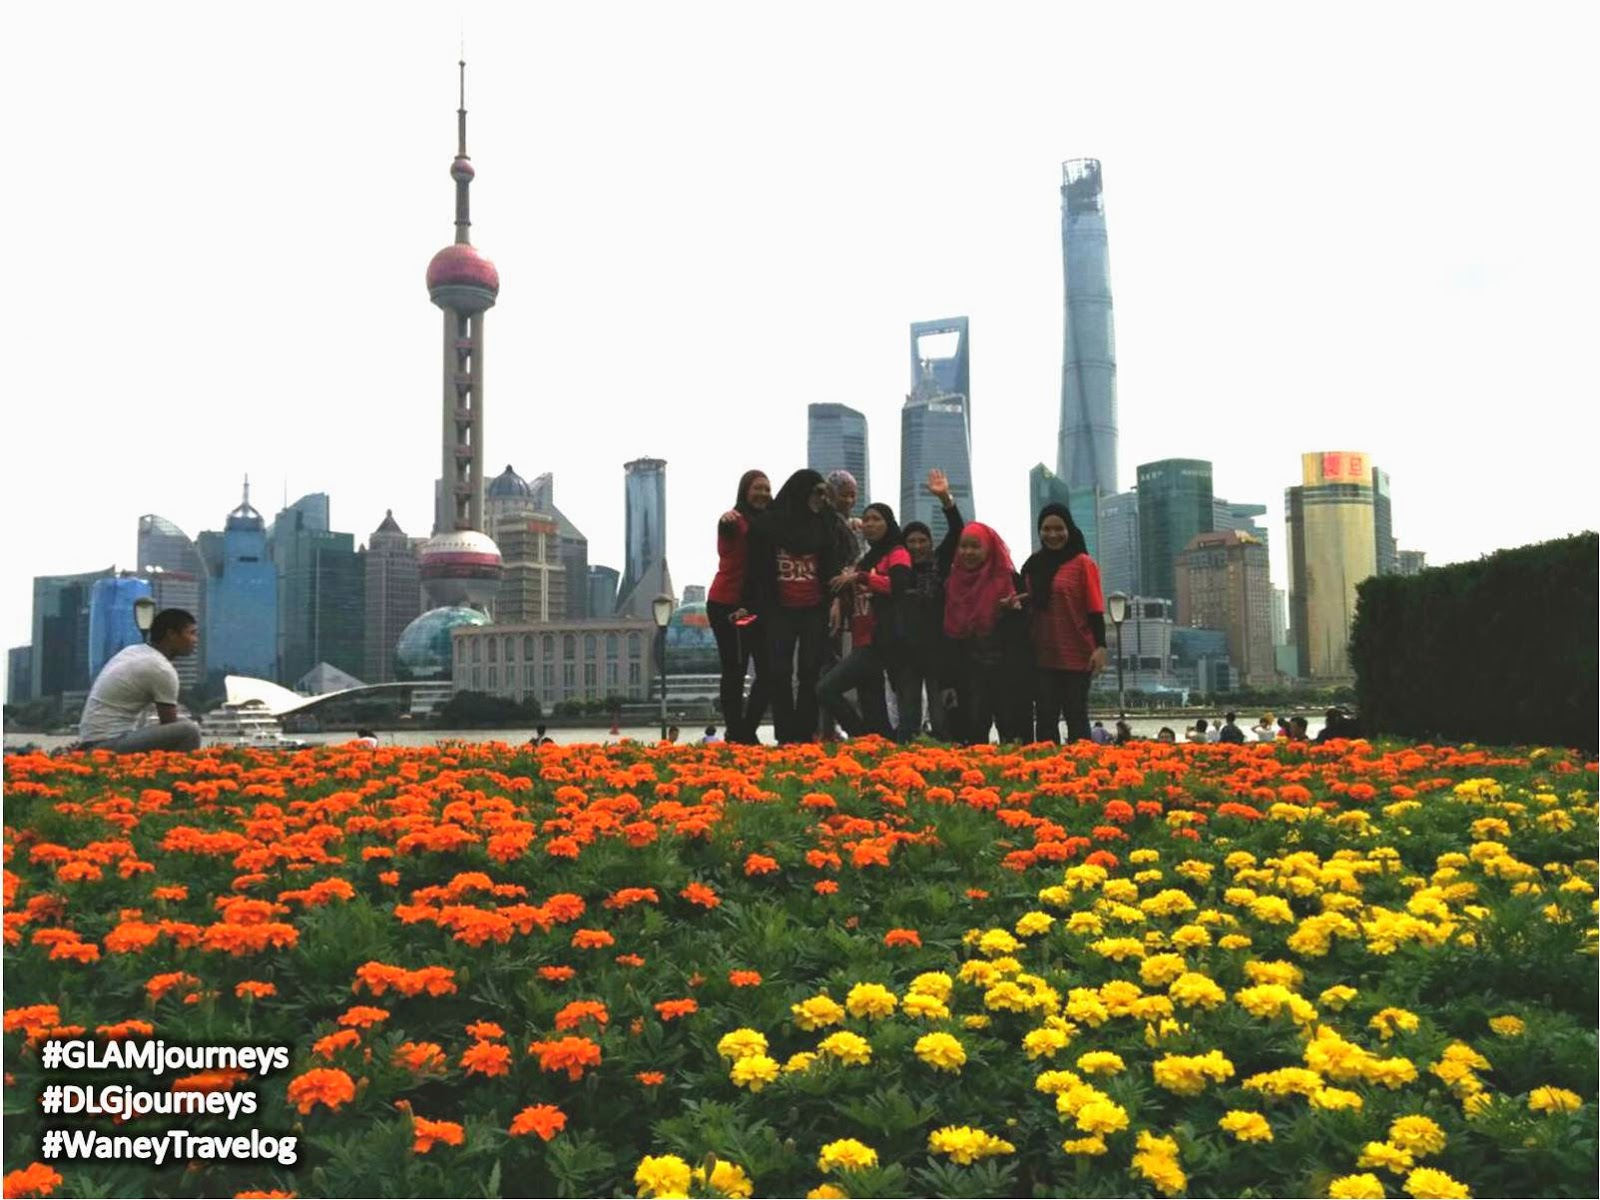 The Bund Shanghai, melancong ke Shanghai, must visit places in Shanghai, tour guide in Shanghai, pakej melancong ke Shanghai, holiday package Shanghai, cuti-cuti Malaysia, Huangpu River, Oriental Pearl Tower, Shanghai Tower, Shanghai World Financial Tower, Glam journeys, DLG Journeys, Glampreneur, Dynamic Leaders group, Waney Travelog, Waney in Shanghai, Waney Zainuddin, Premium Beautiful Business, peluang perniagaan 2014